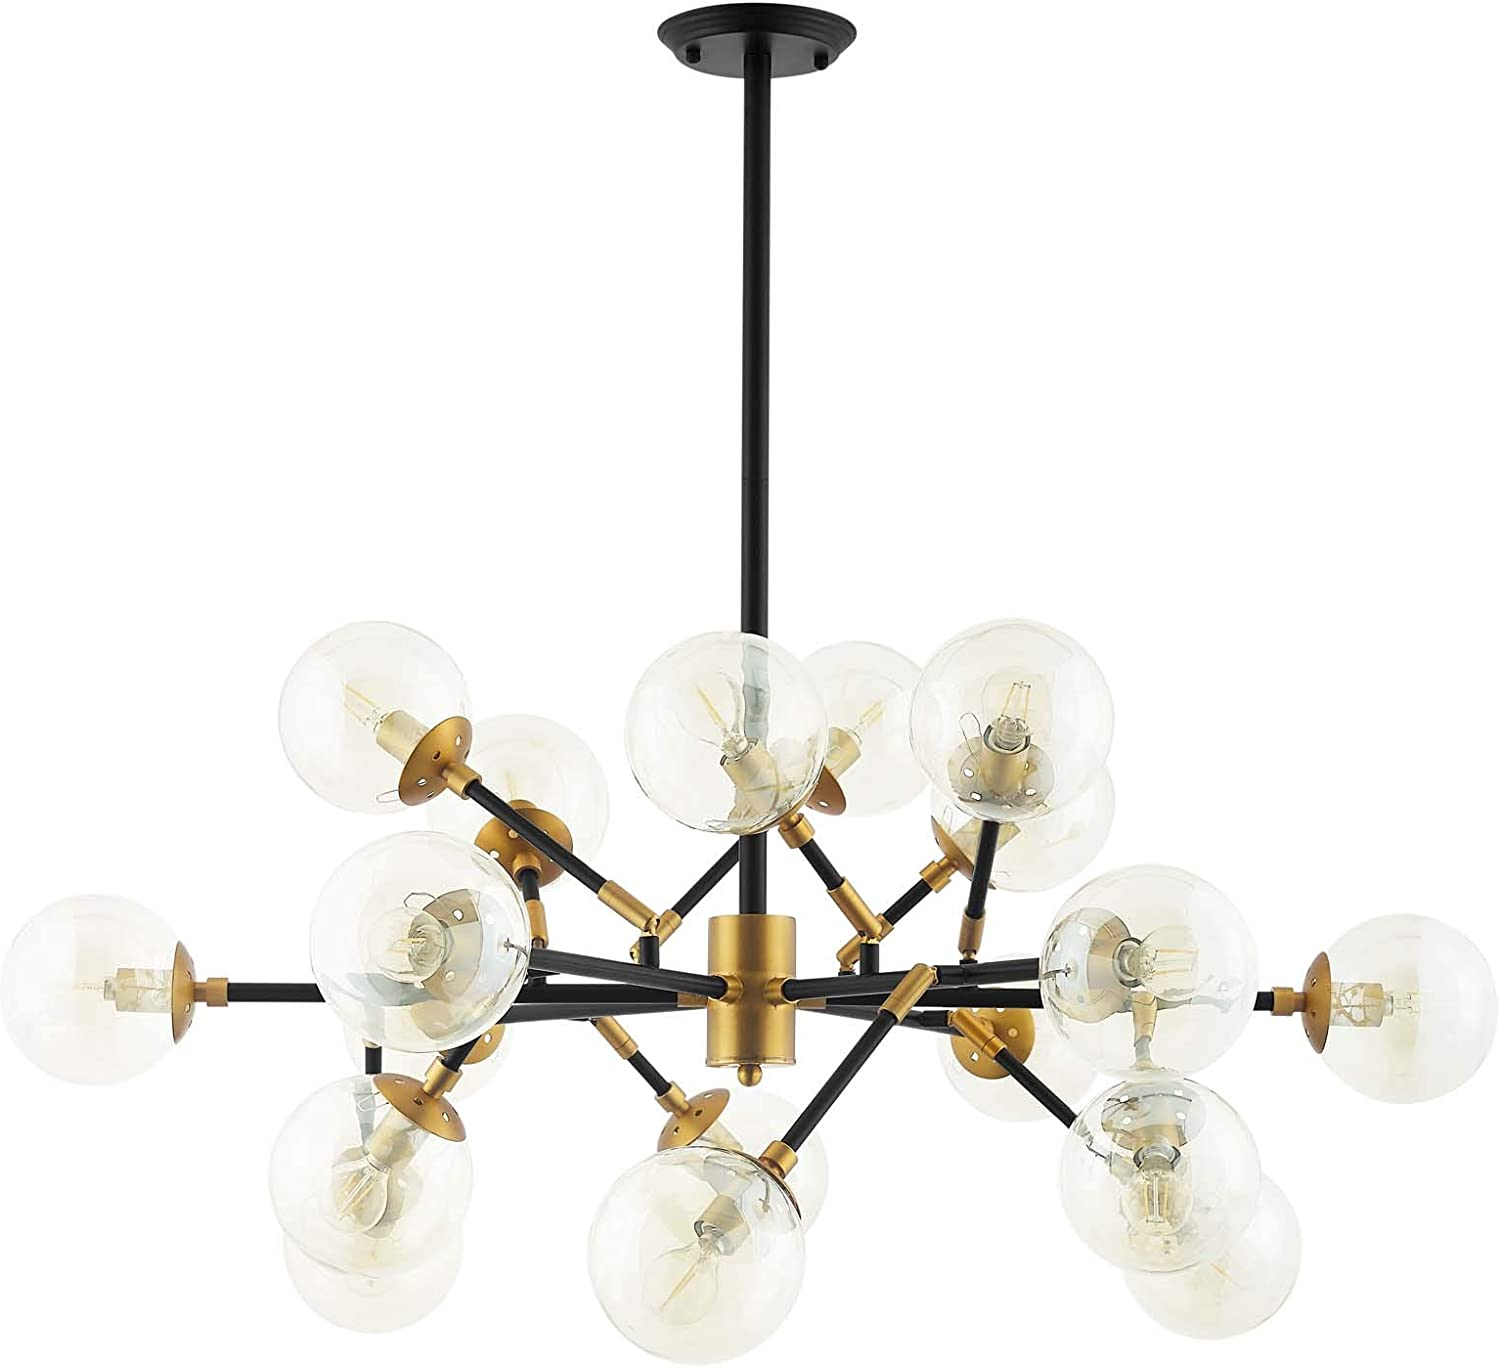 Modway Sparkle Amber Glass And Antique Brass 18 Lights Mid Century Pendant Chandelier